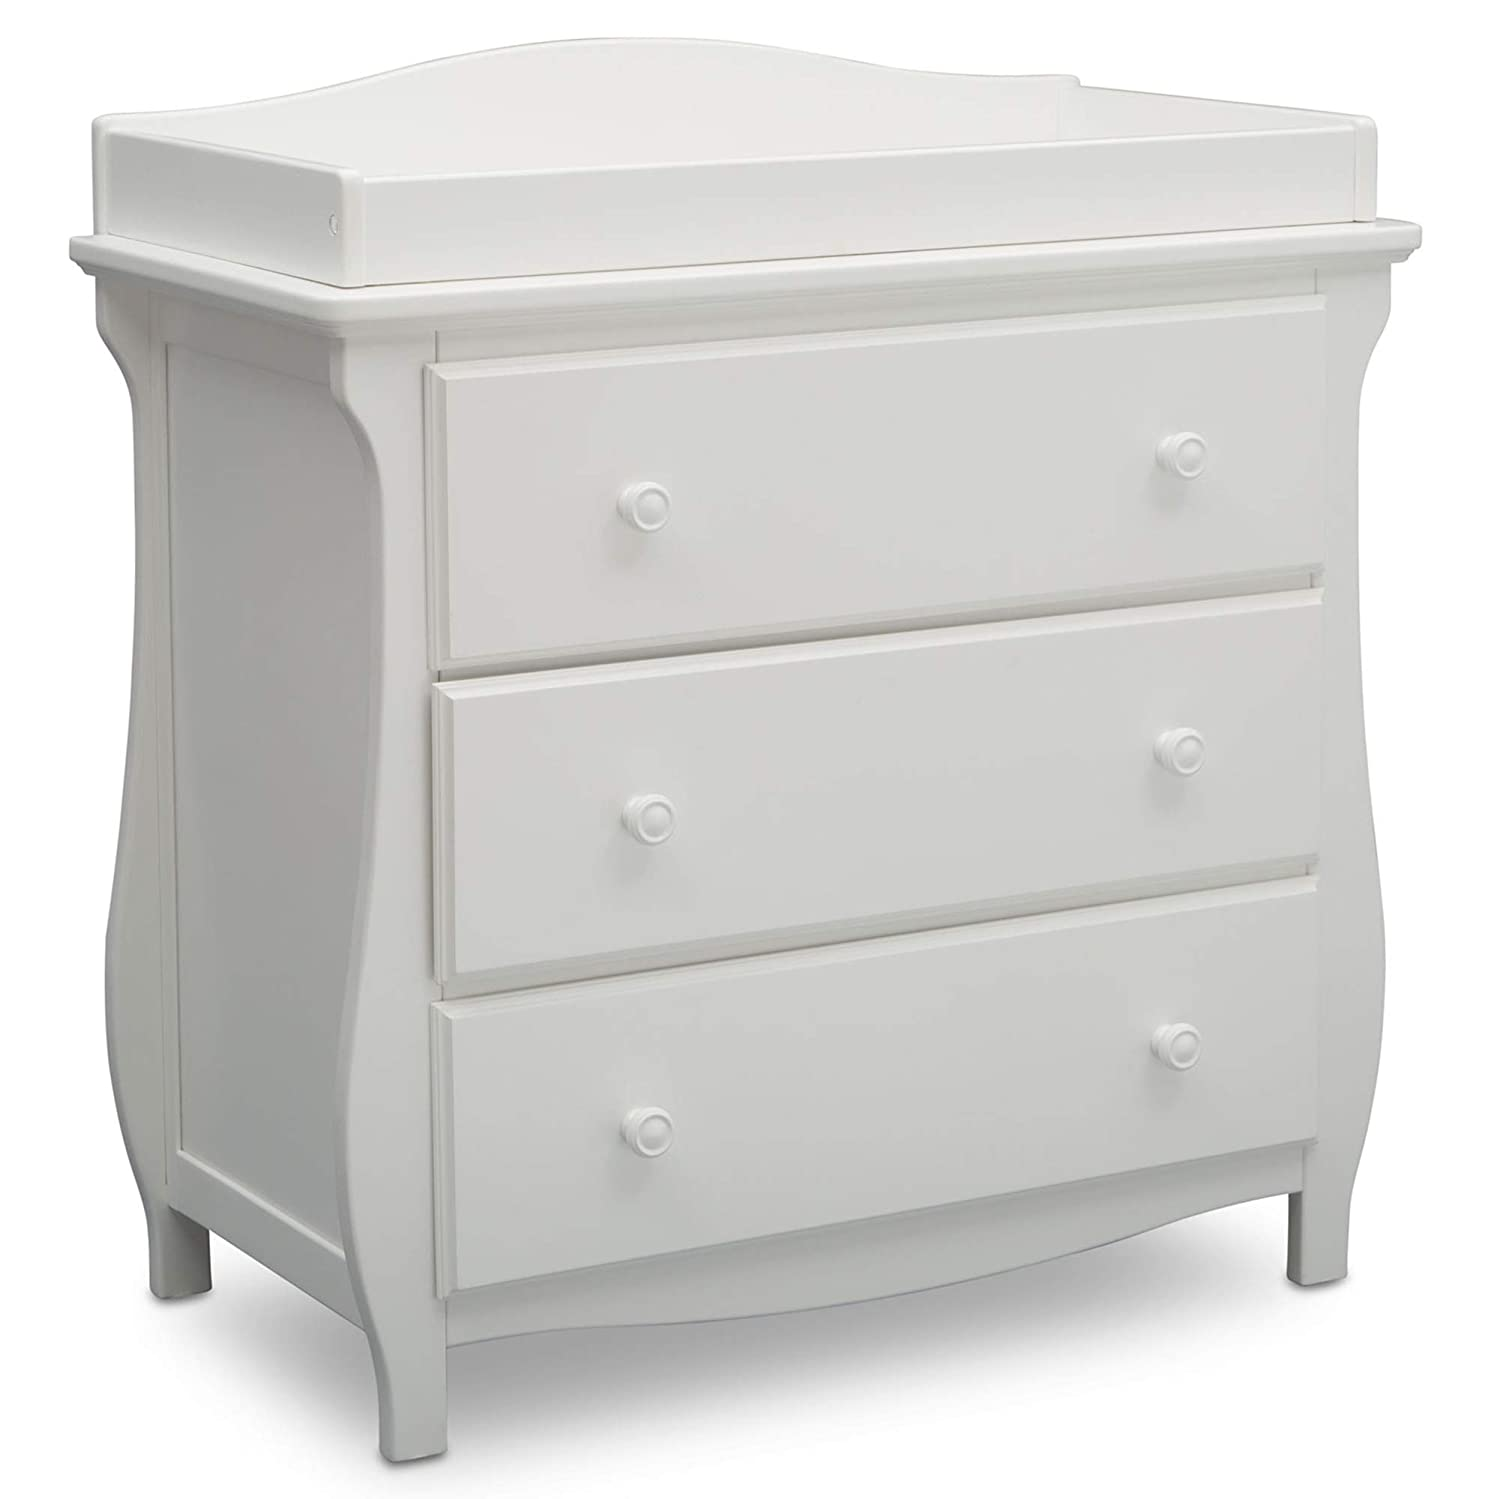 Delta Children Lancaster 3 Drawer Dresser with Changing Top, Bianca White Delta Enterprise Corp - PLA 552030-130